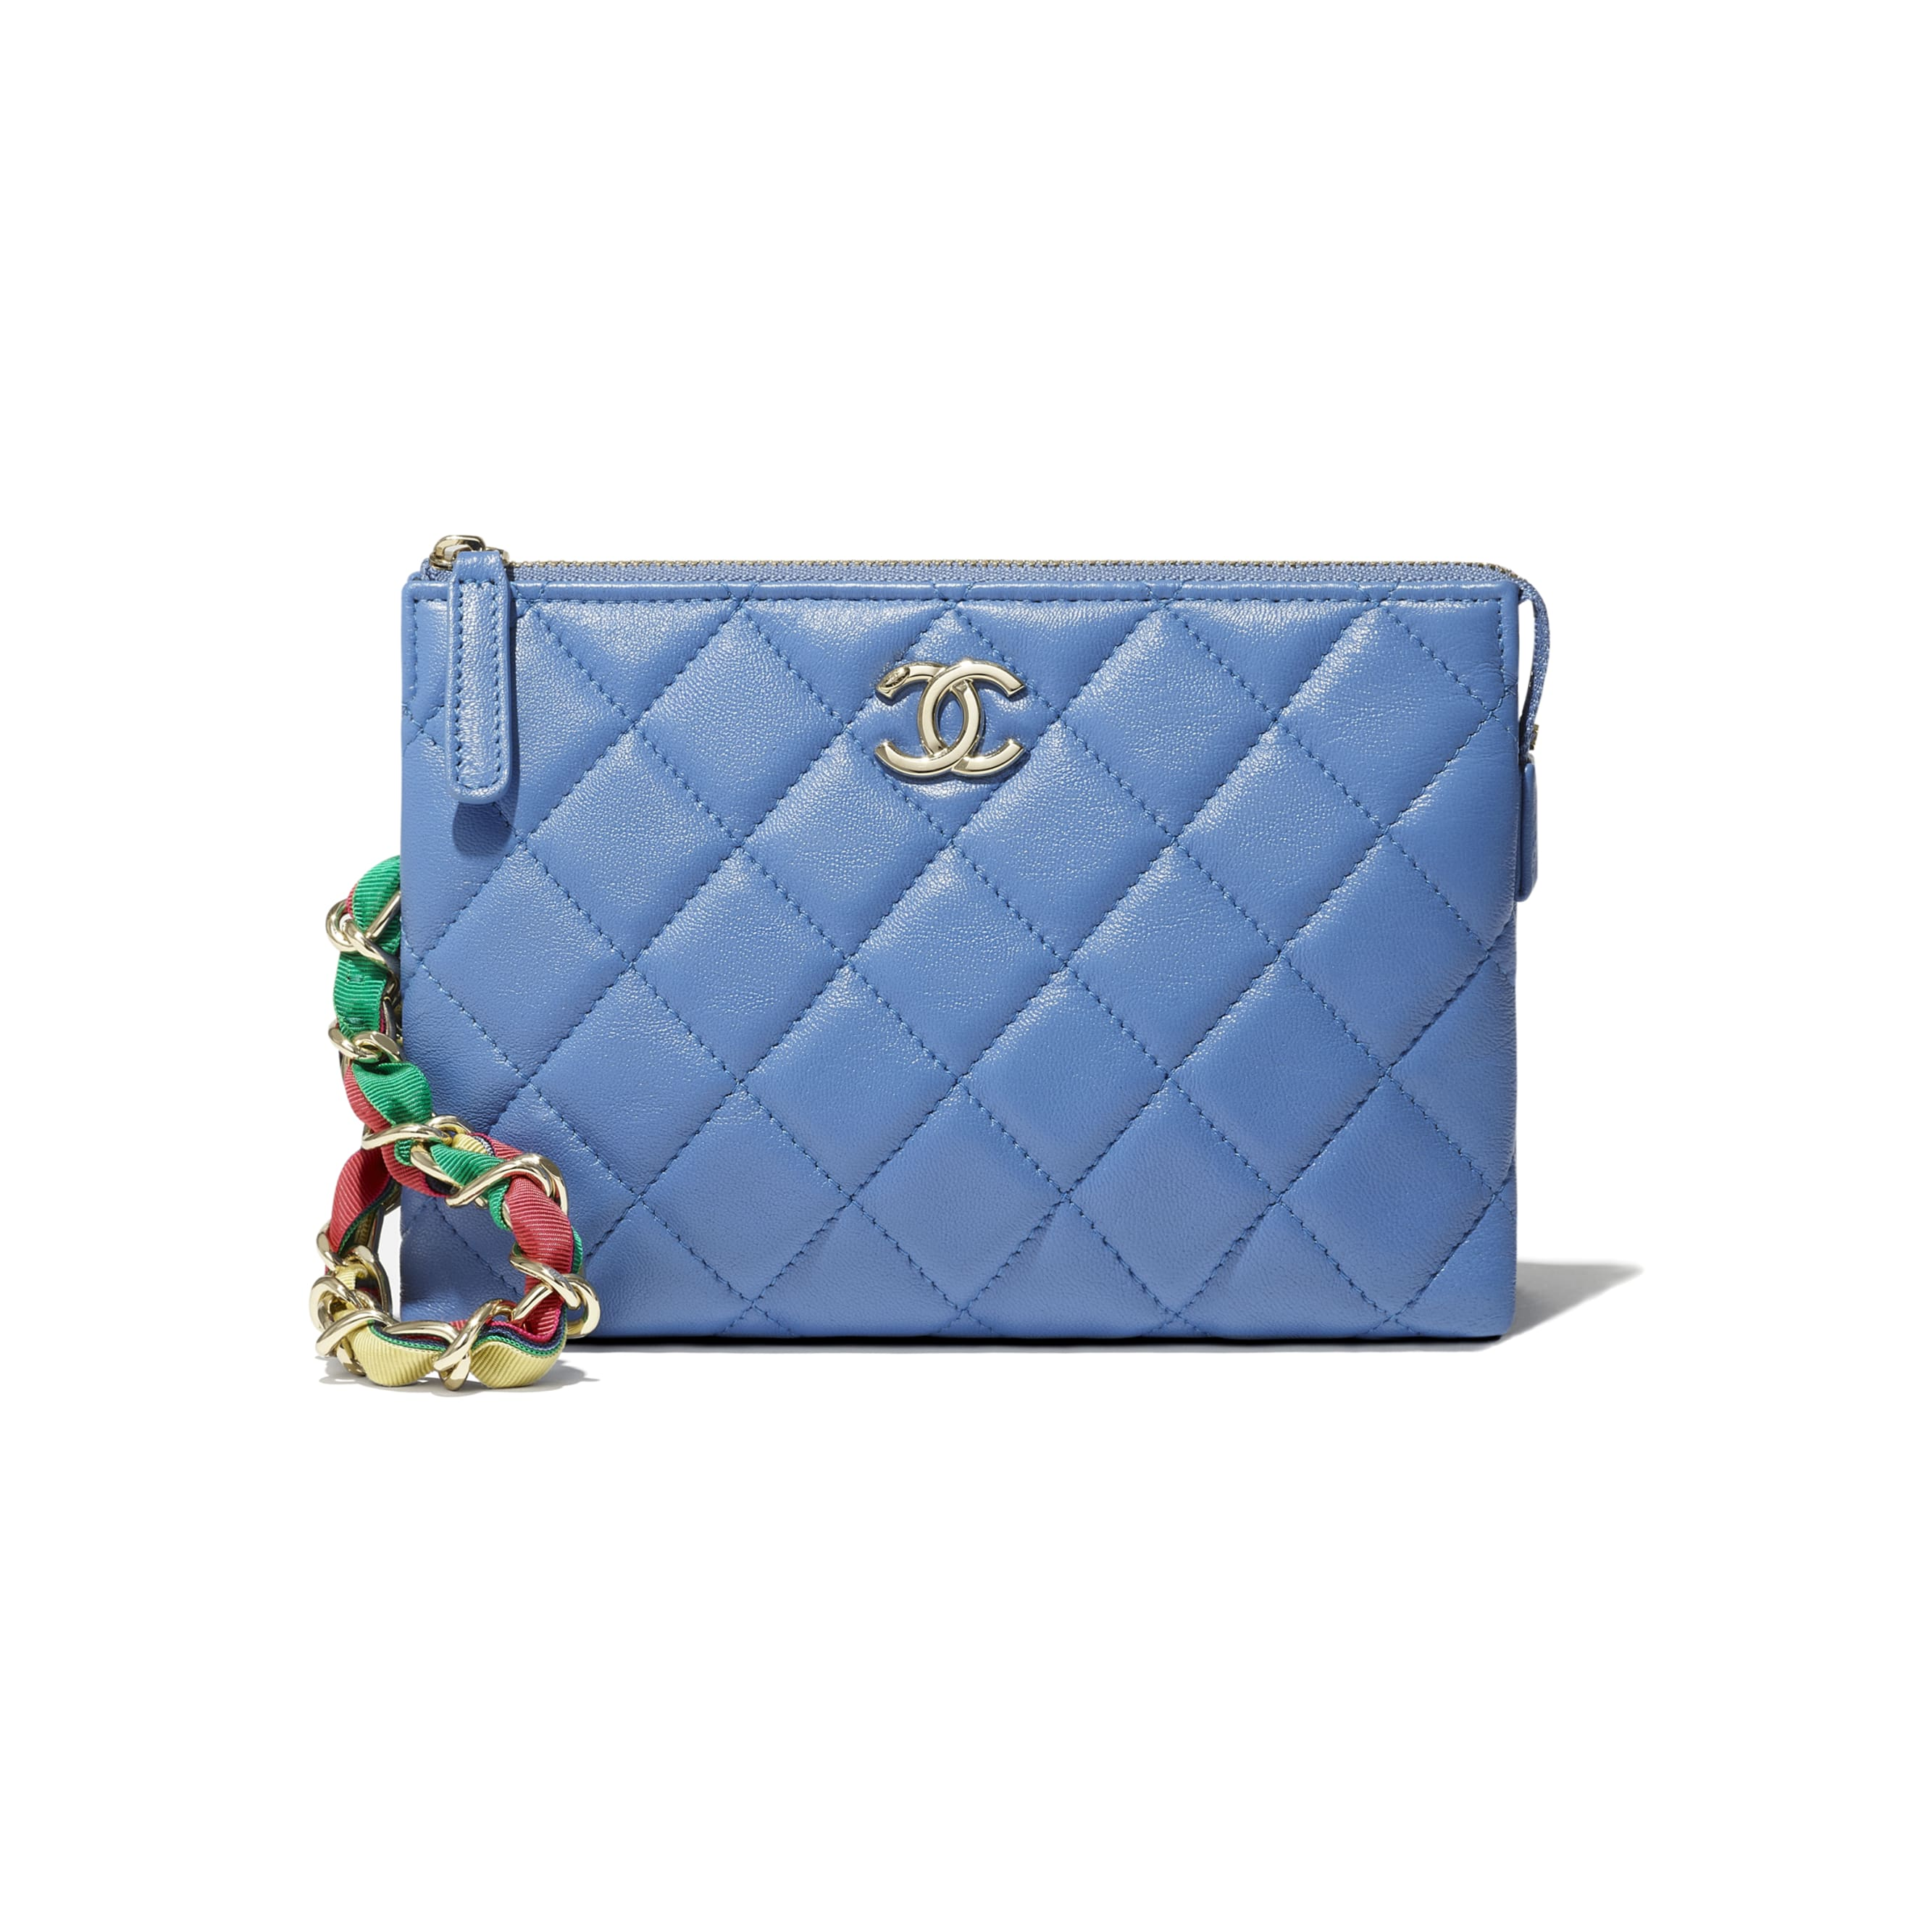 Pouch - Blue - Shiny Lambskin, Ribbon & Gold-Tone Metal - CHANEL - Extra view - see standard sized version